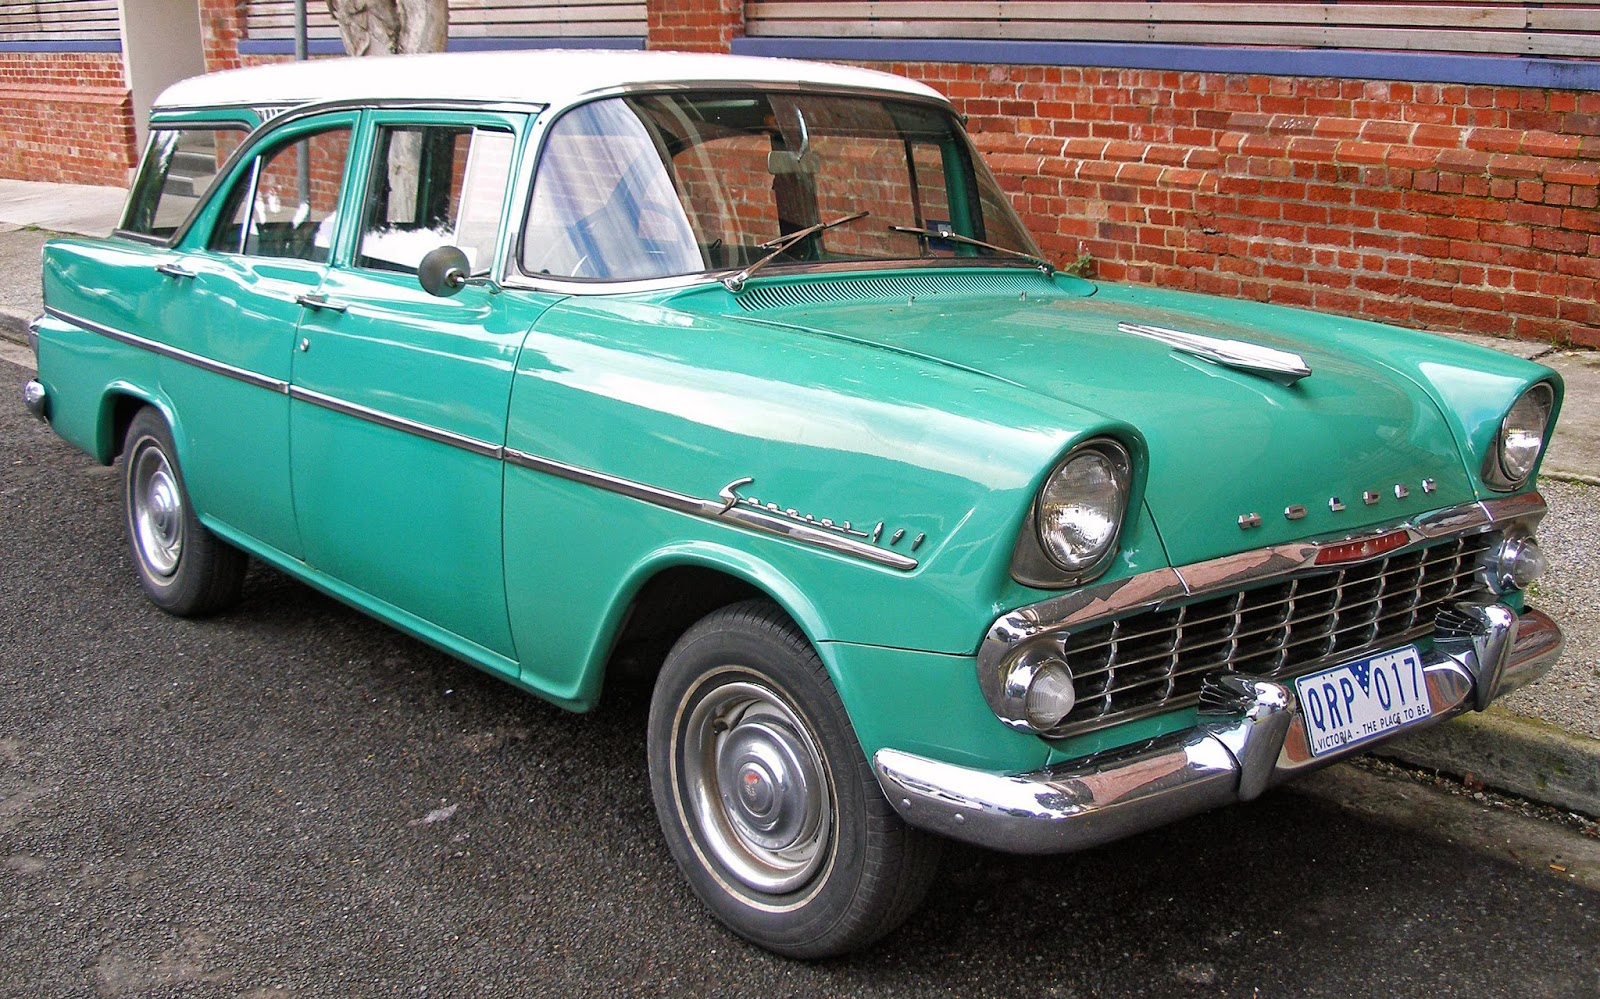 The EK of 1961 was Holden's response to the Ford Falcon, with the availability of automatic transmission.